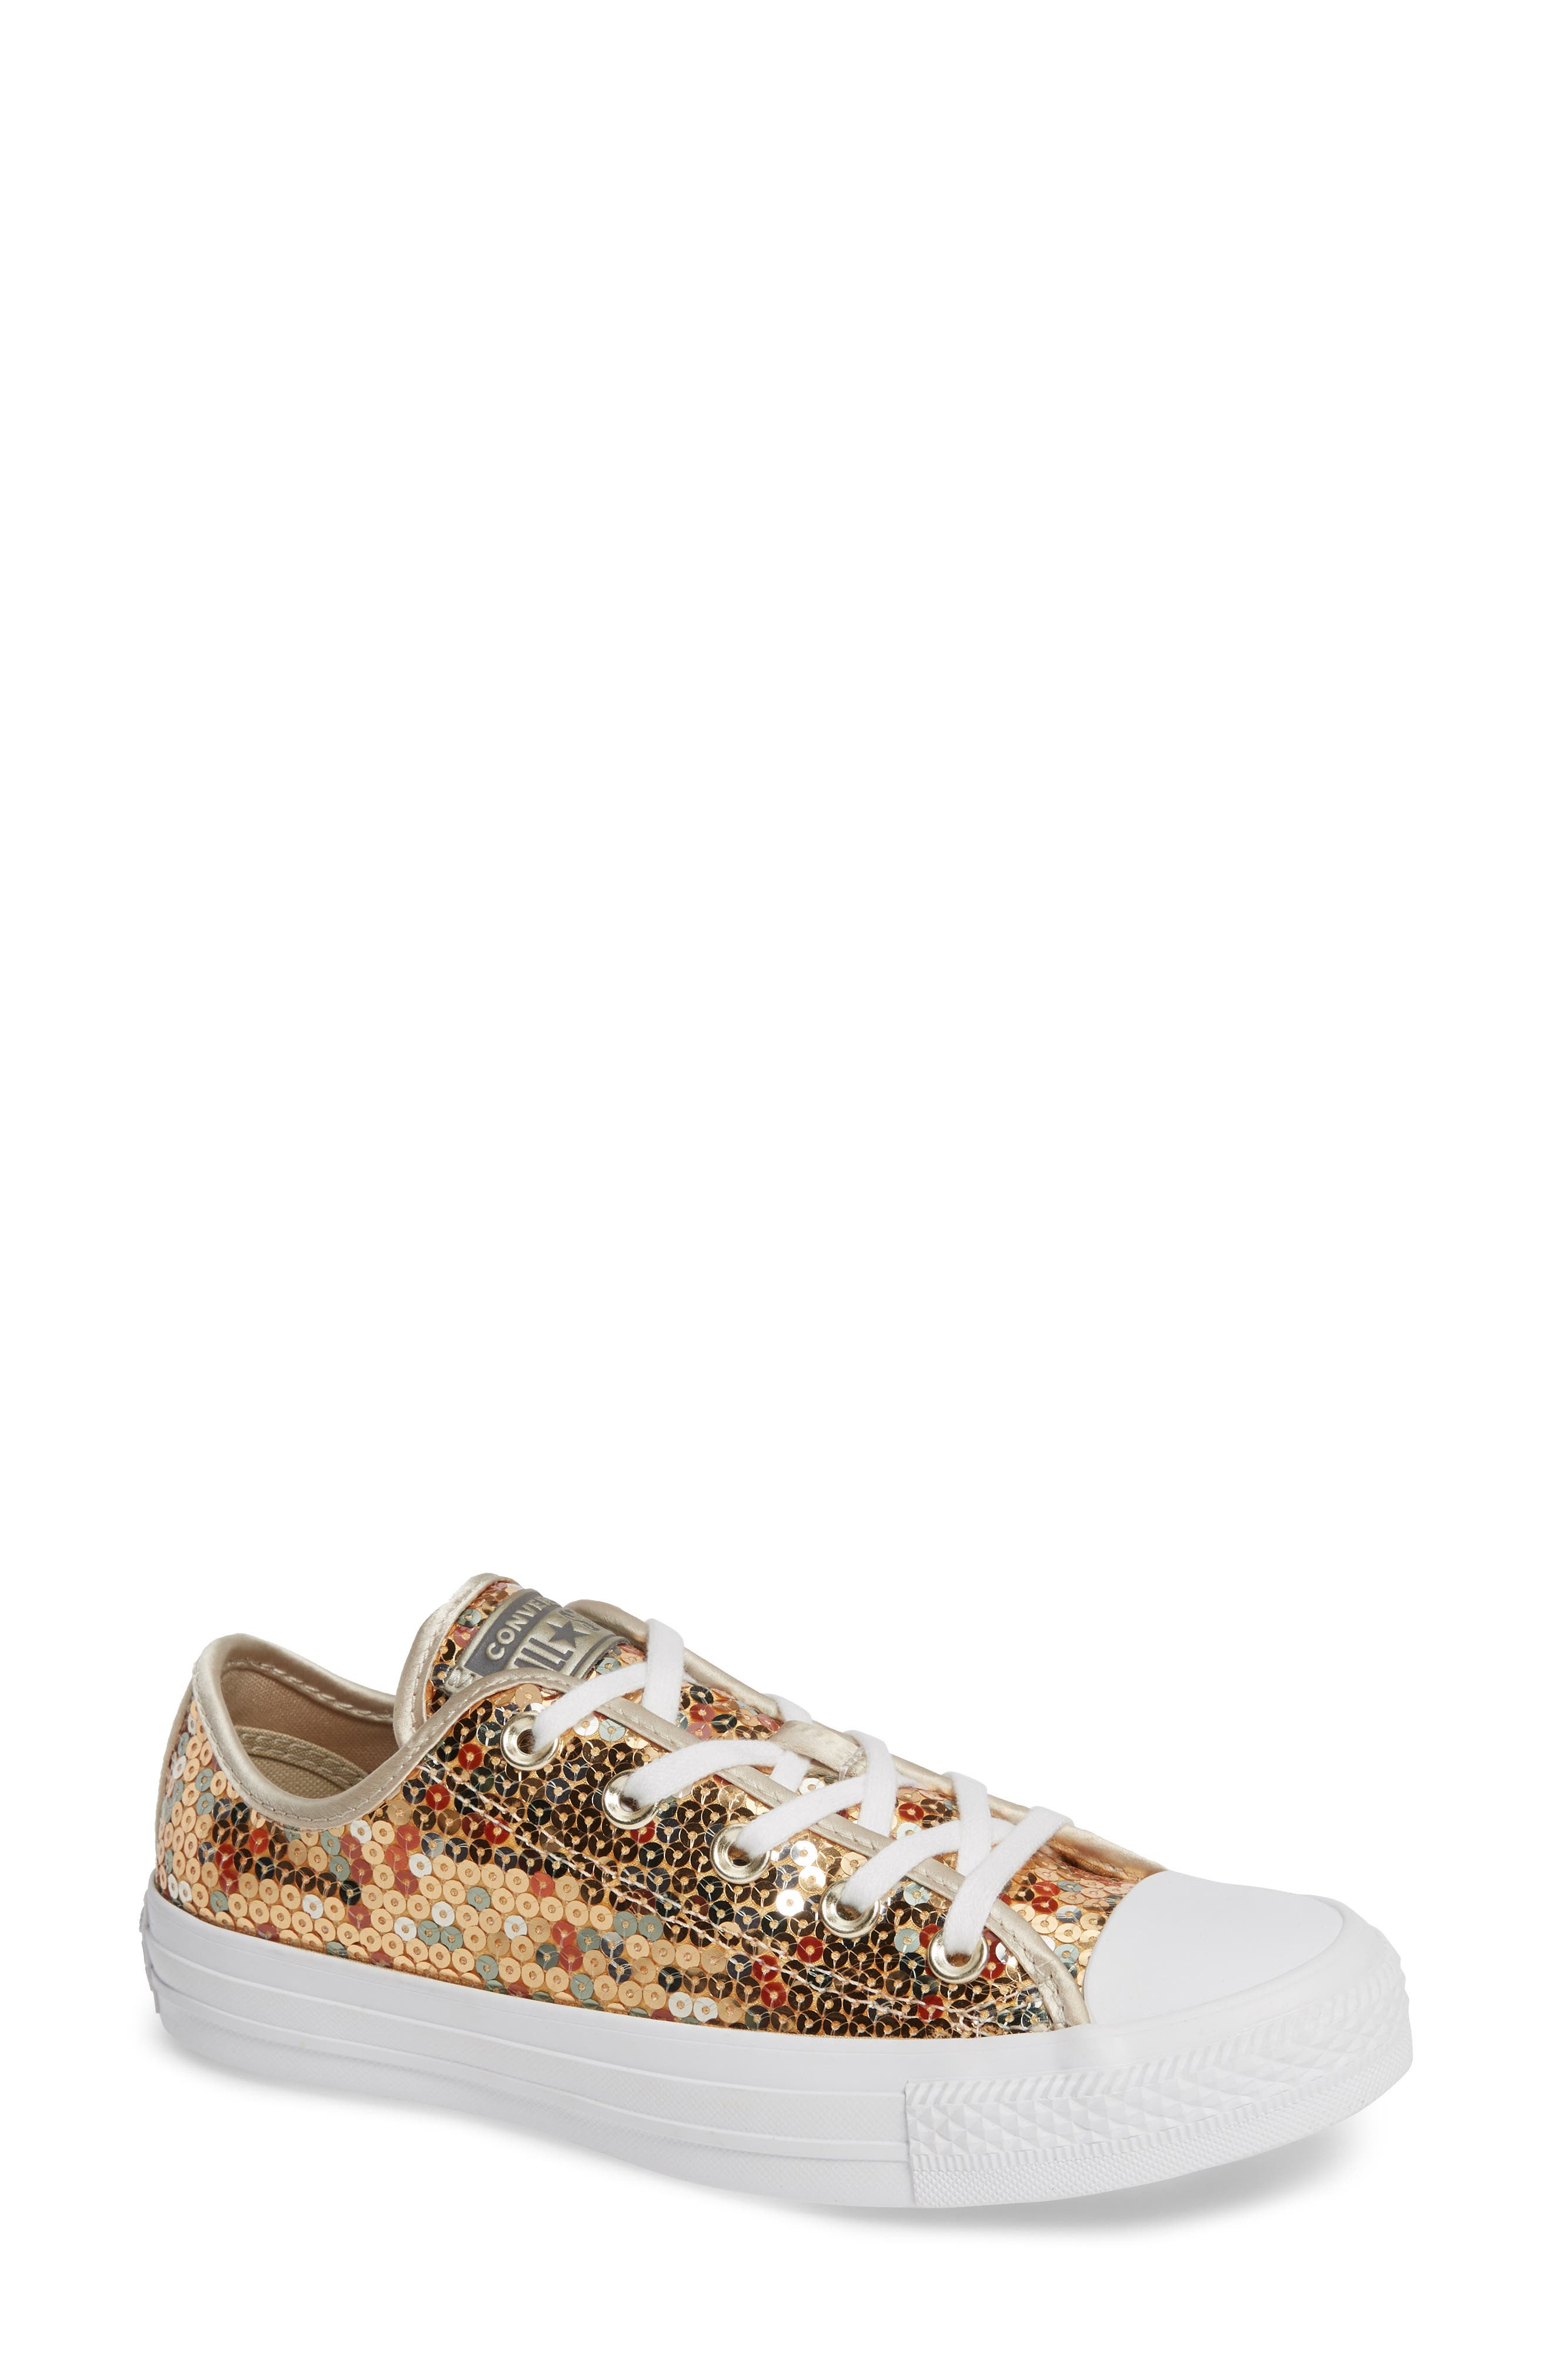 CONVERSE, Chuck Taylor<sup>®</sup> All Star<sup>®</sup> Sequin Low Top Sneaker, Main thumbnail 1, color, GOLD SEQUINS